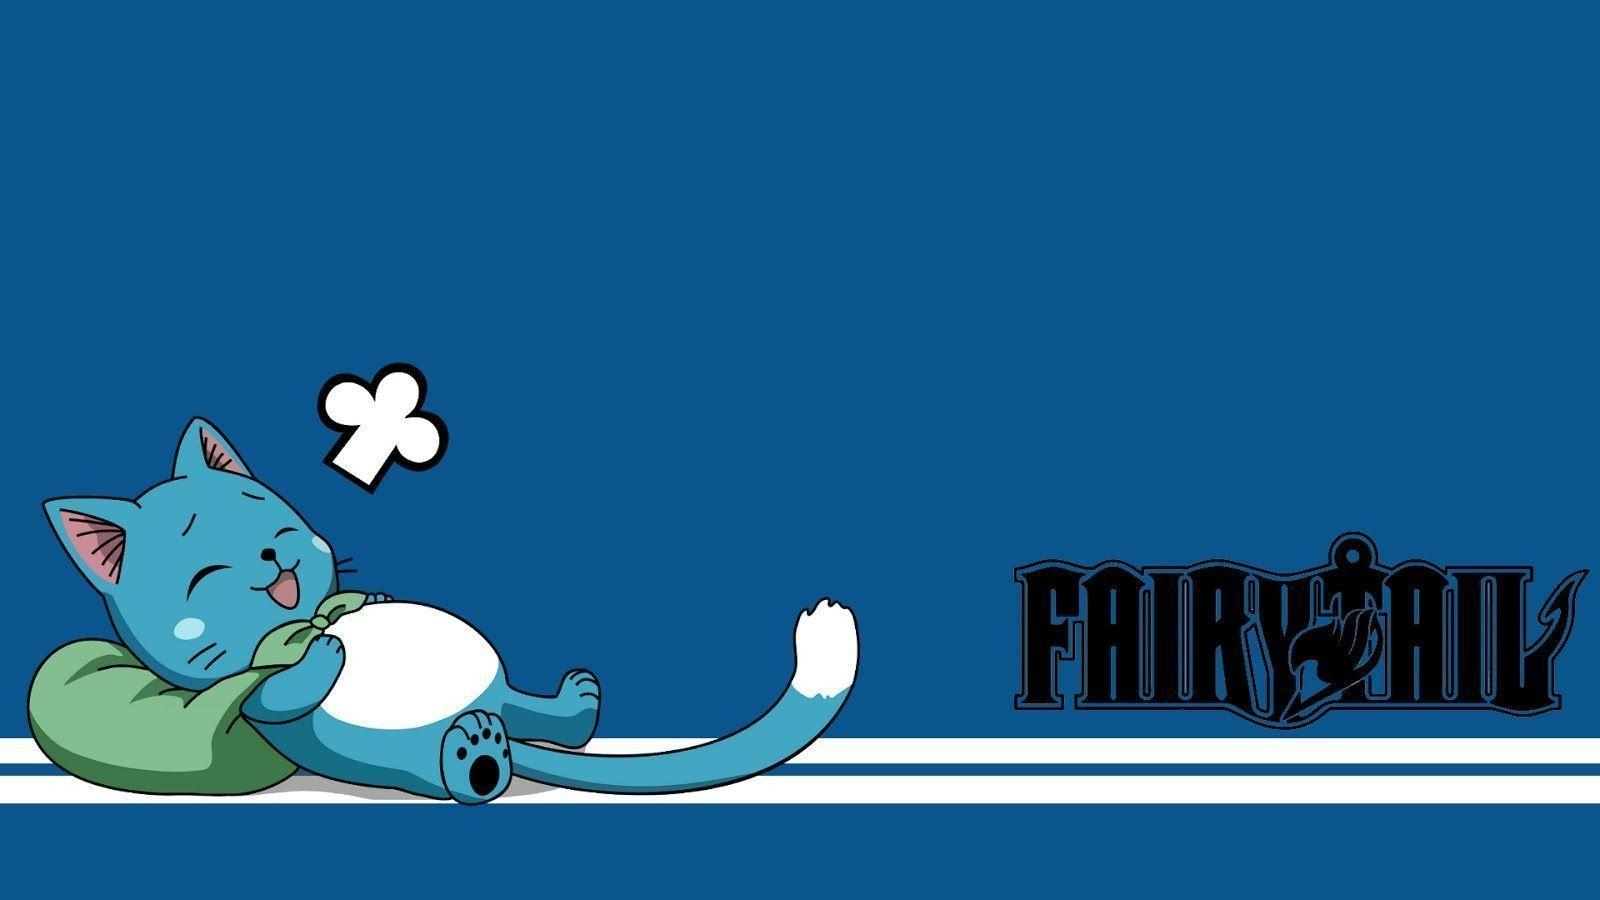 fairy tail happy wallpapers - wallpaper cave